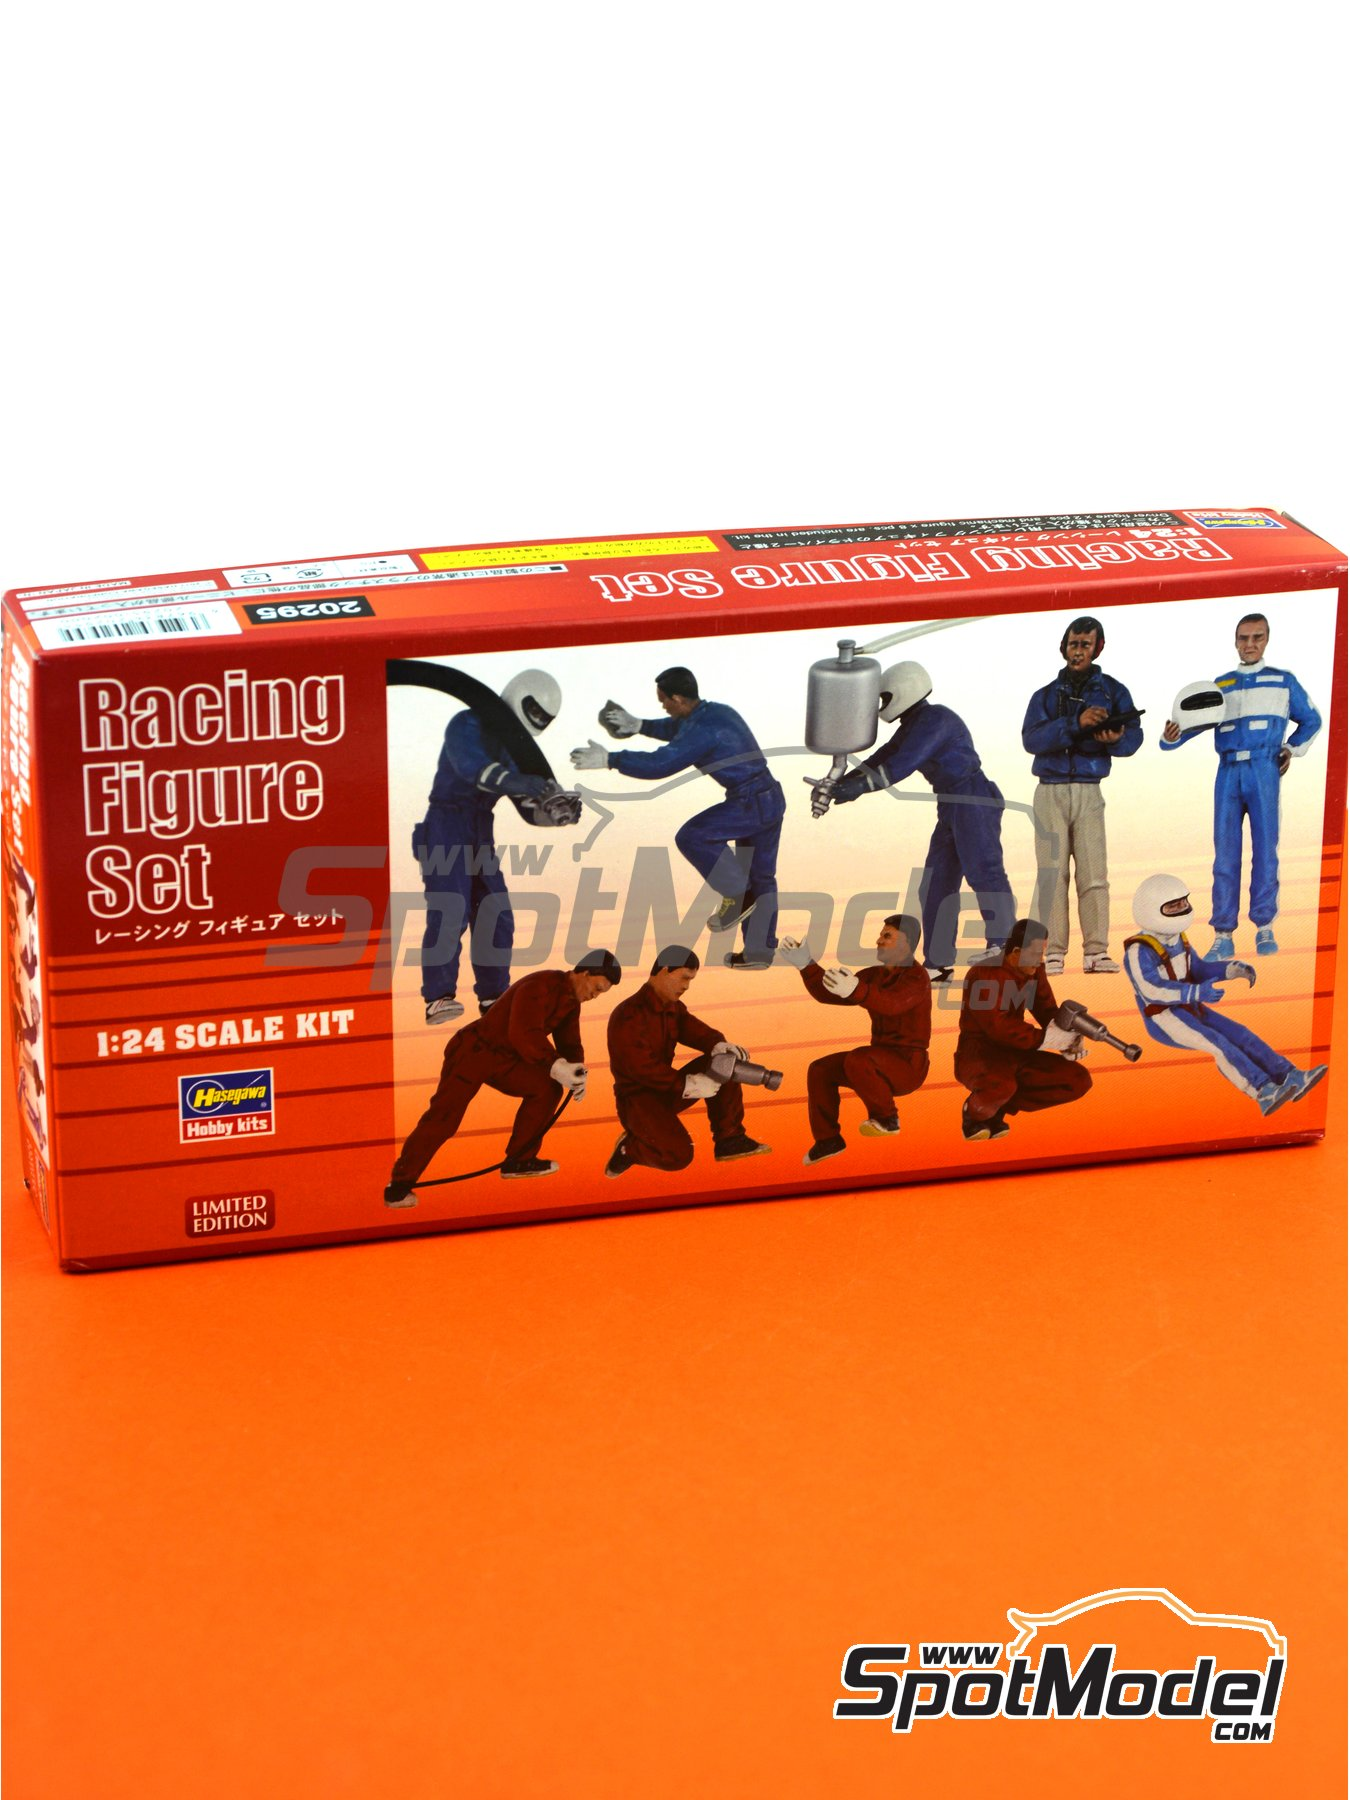 Racing figure set | Figures set in 1/24 scale manufactured by Hasegawa (ref. 20295) image